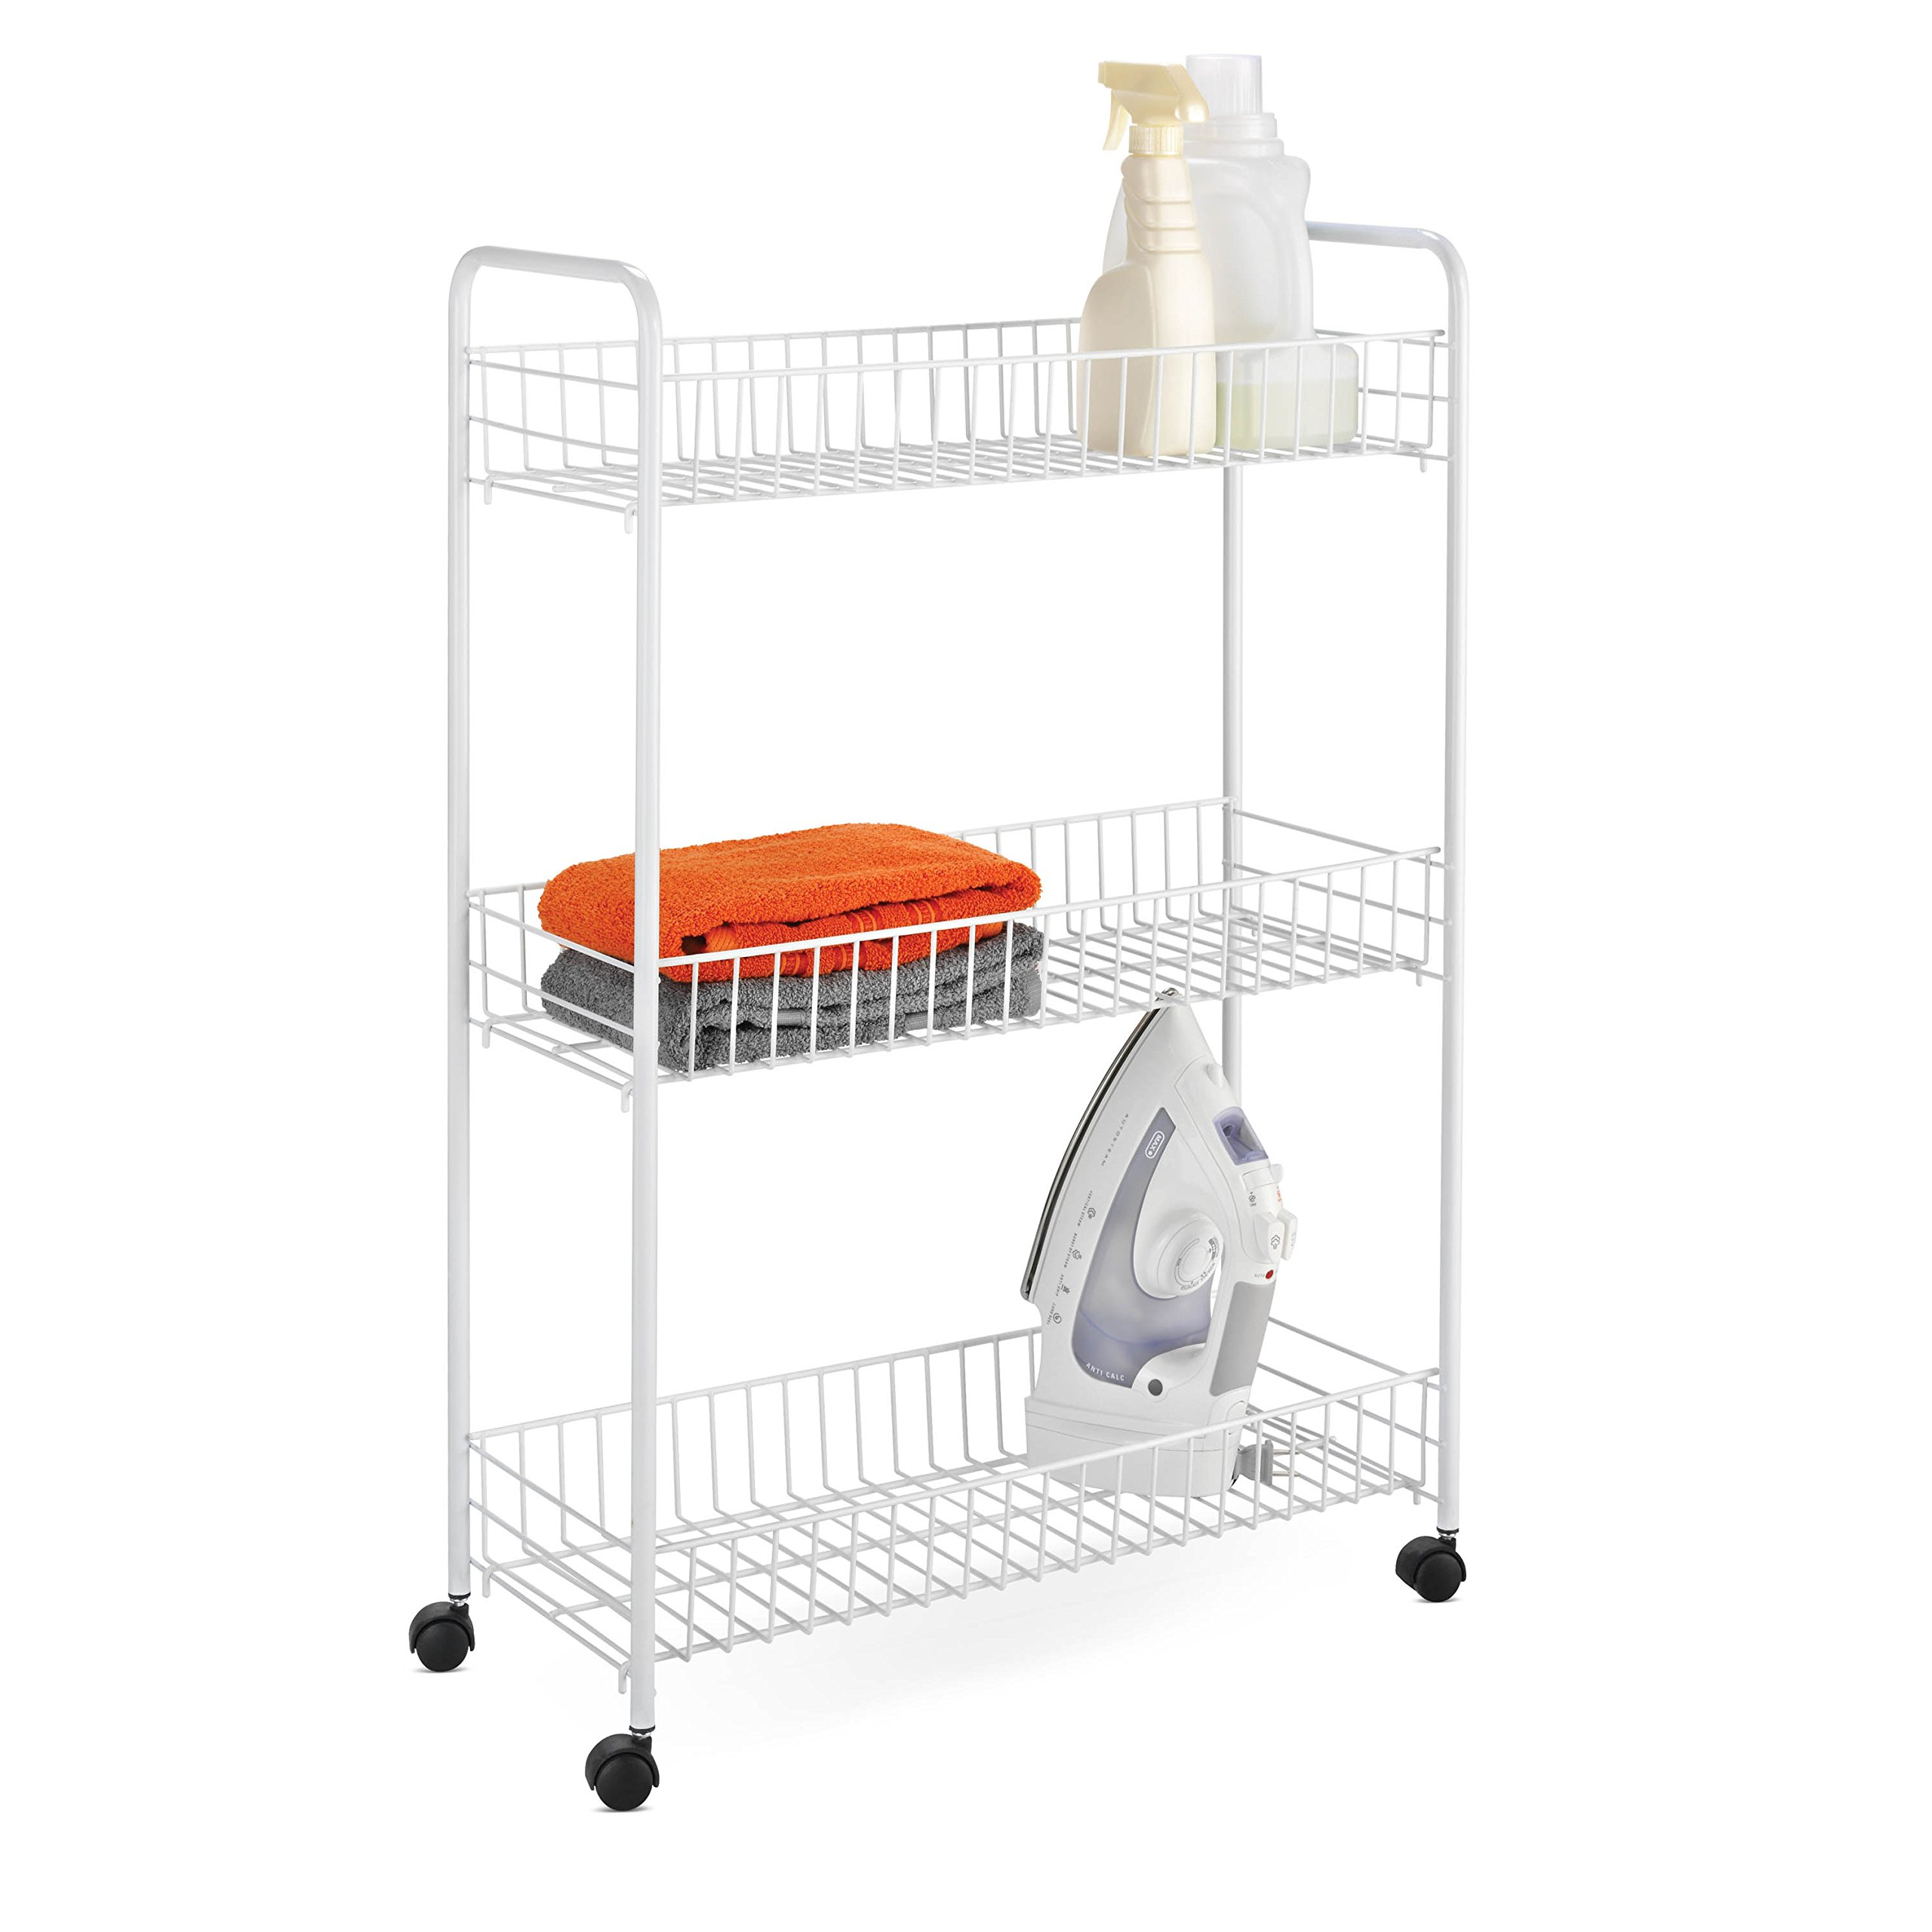 Honey-Can-Do Crt-01149 3-Tier Laundry Cart White 3-Tier Rolling Household Cart 8